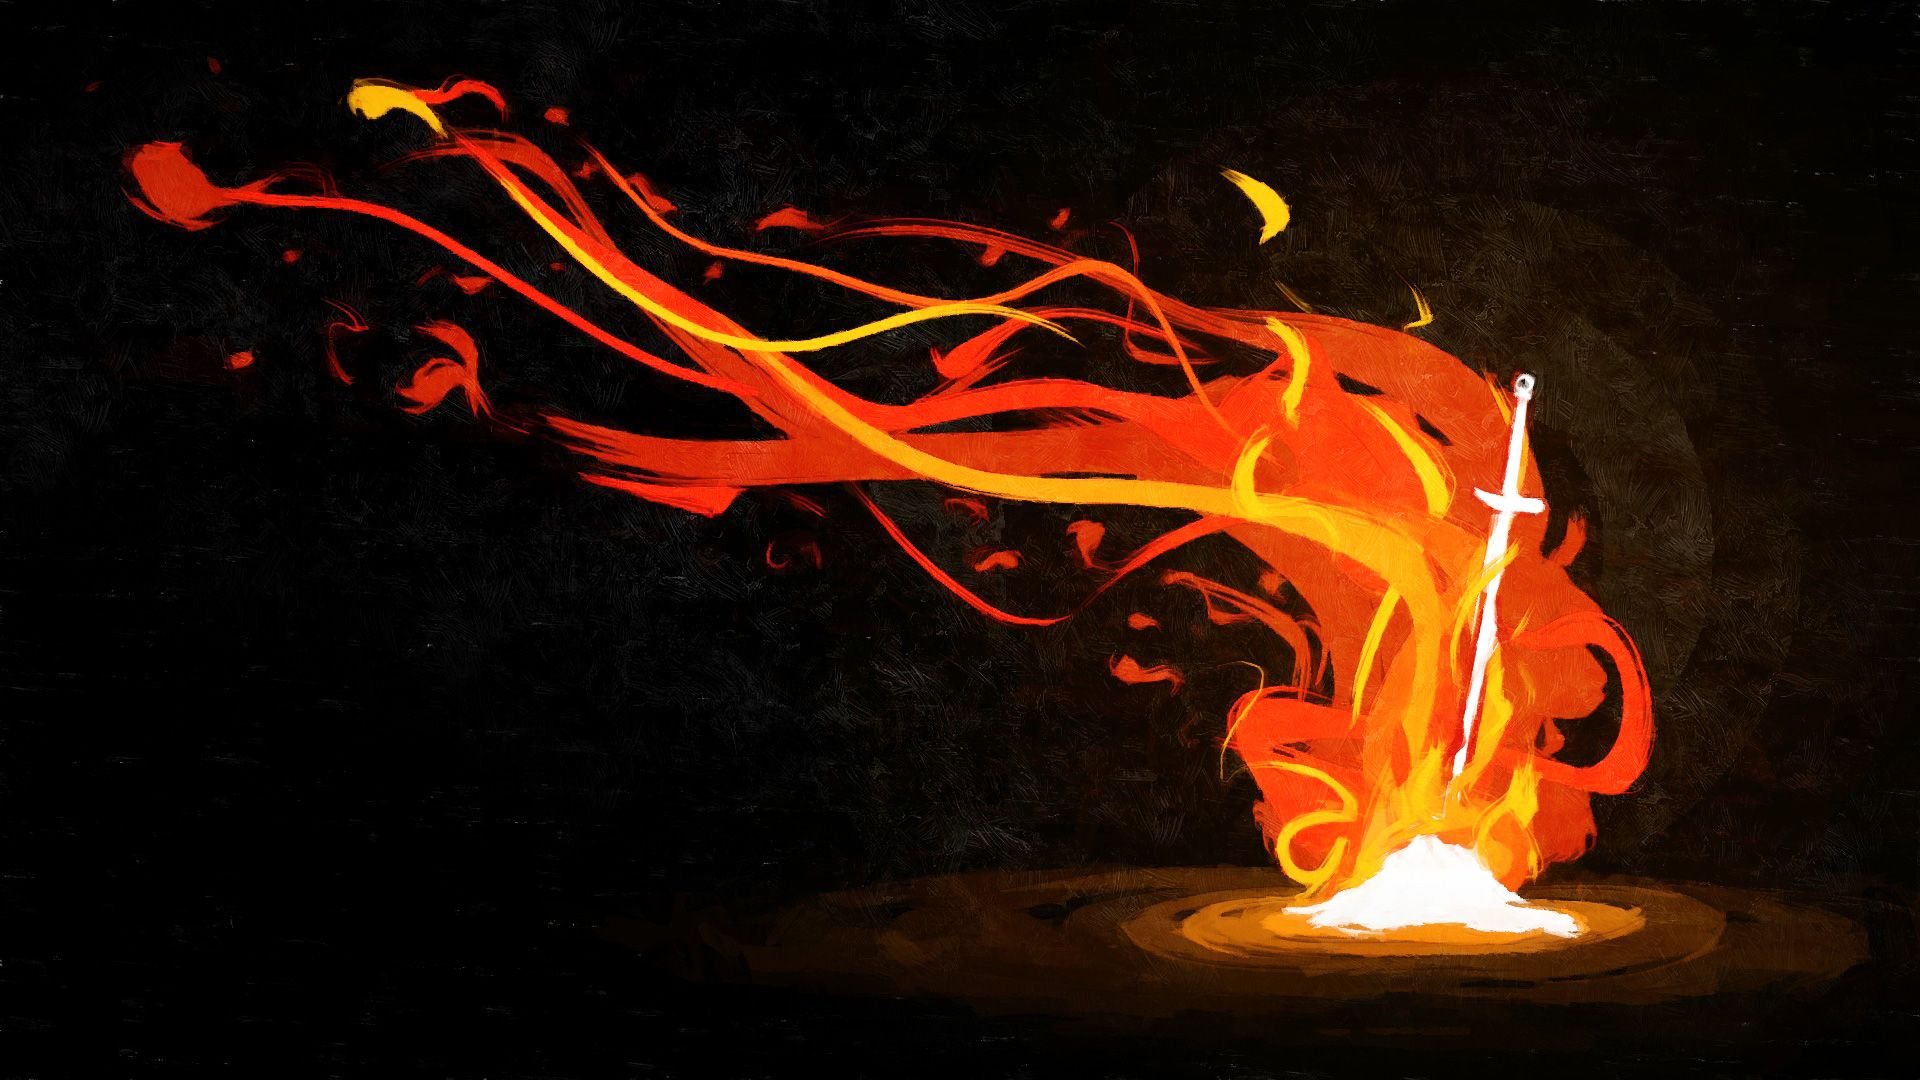 Dark Souls Bonfire Wallpaper Dark Souls Wallpaper Dark Souls Tattoo